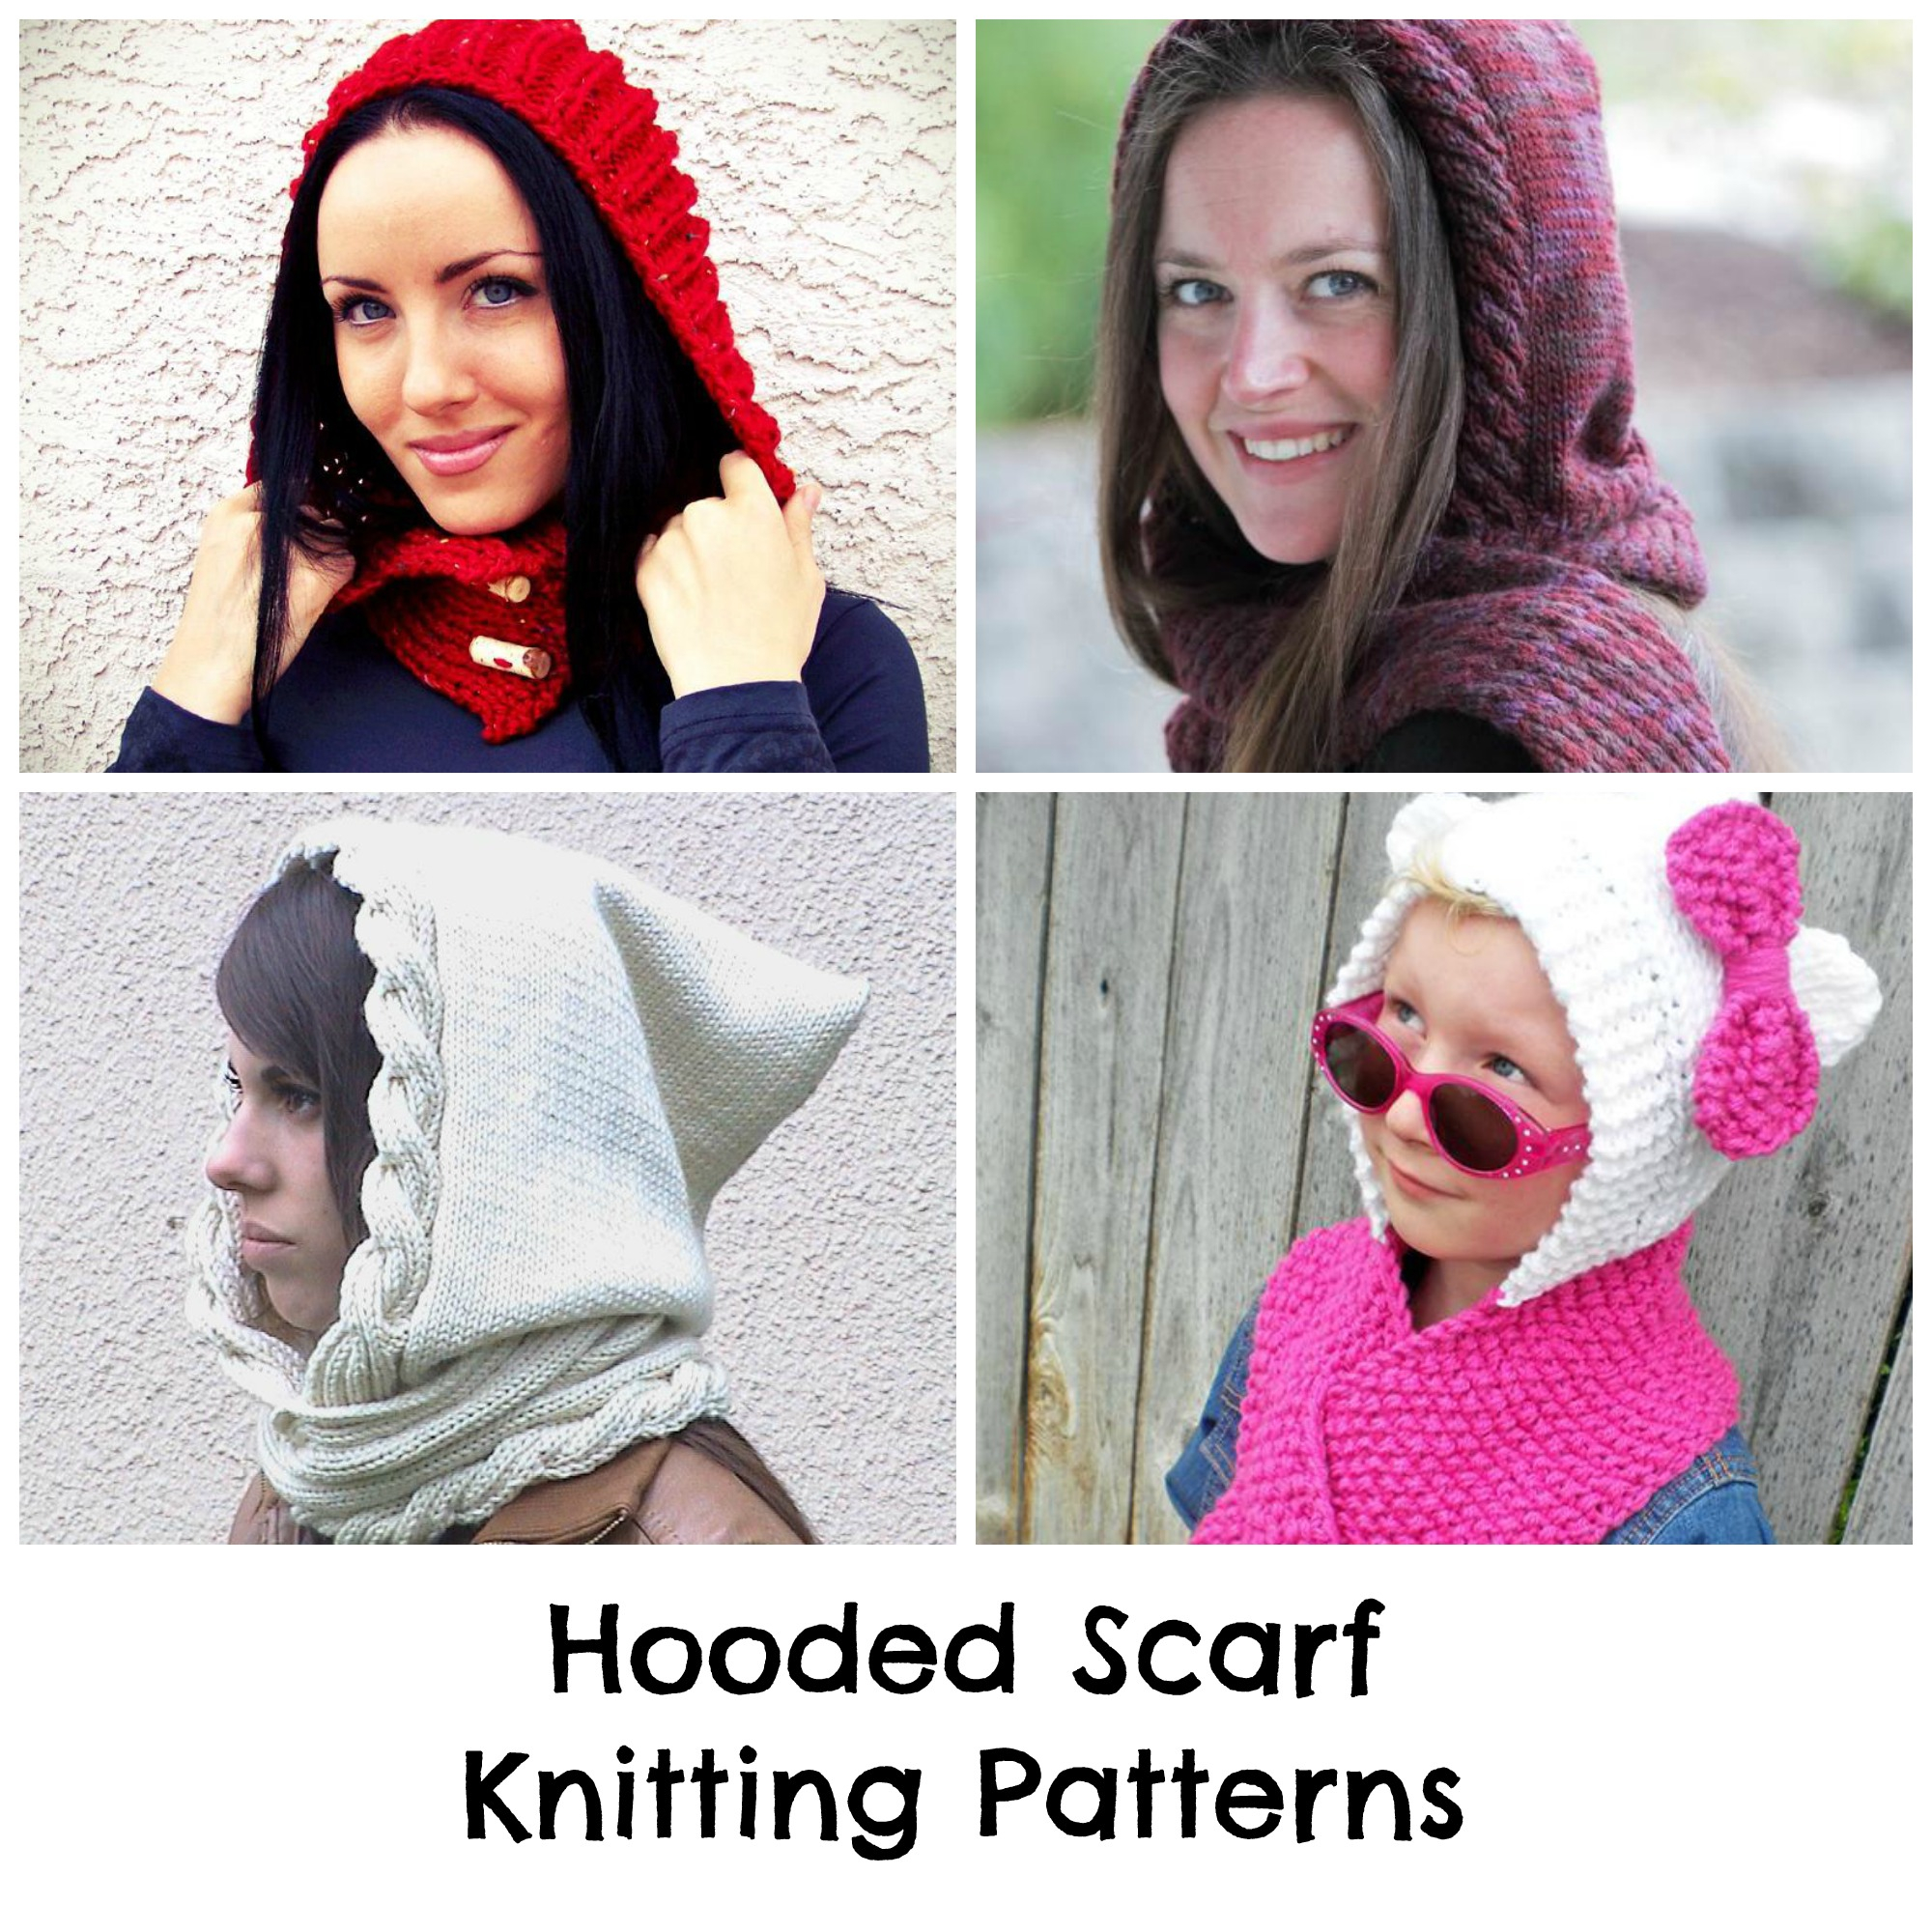 Knitted Hood Scarf Pattern Find The Perfect Hooded Scarf Knitting Pattern